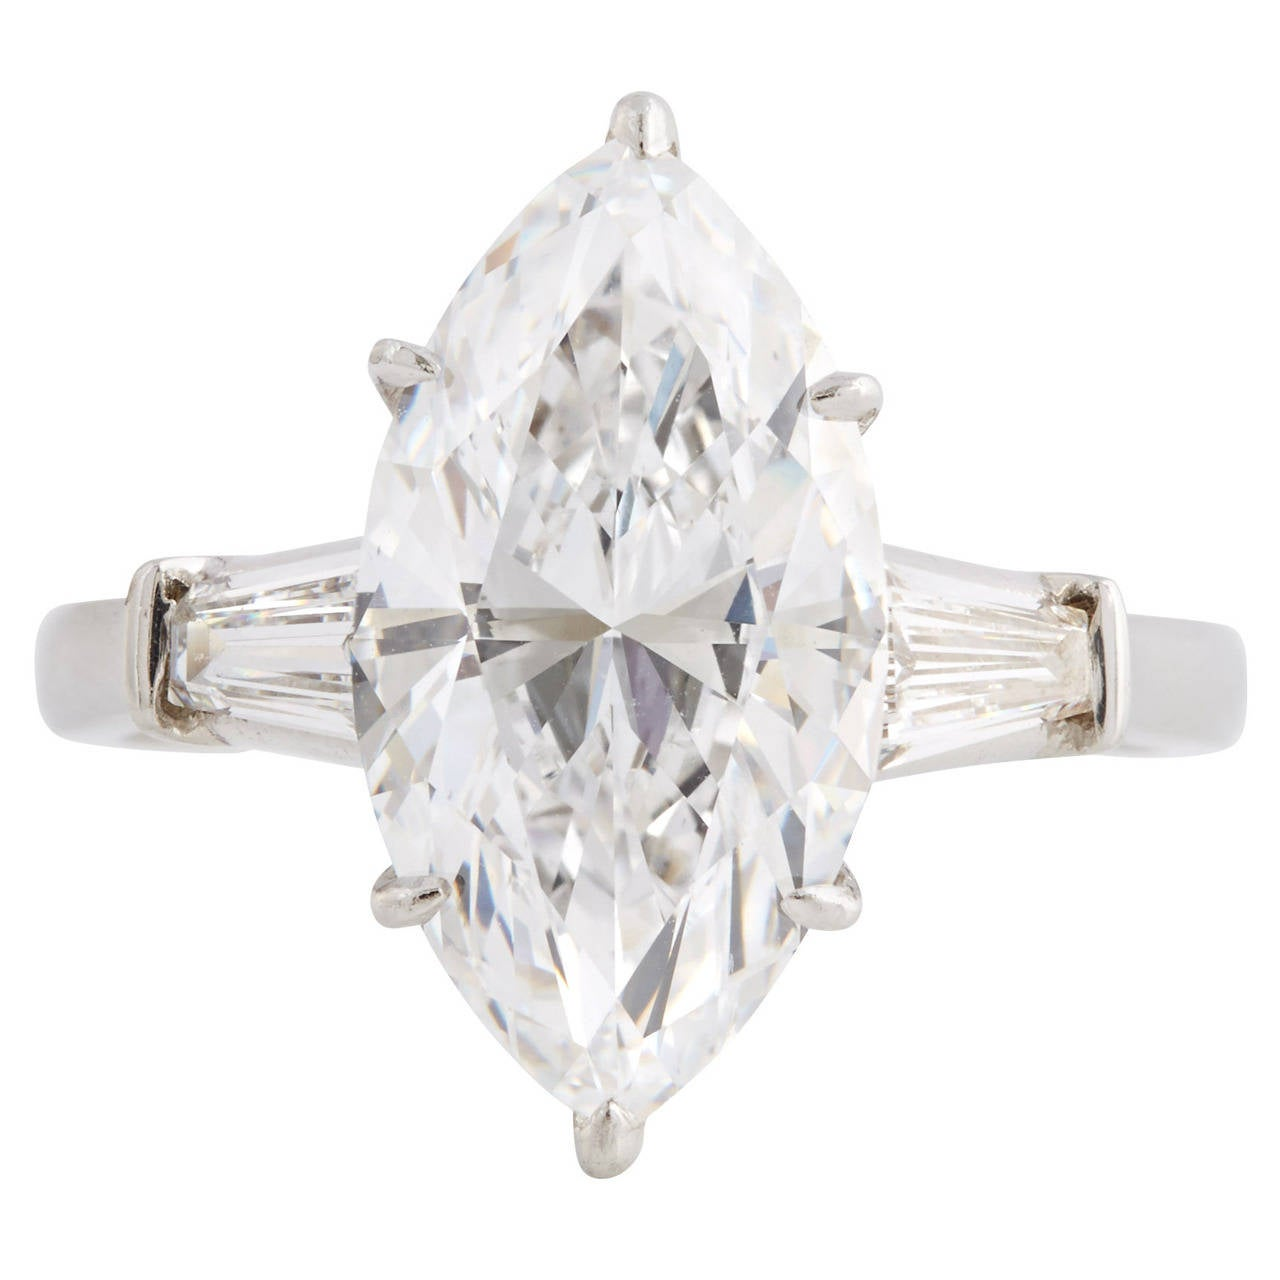 5.02 Carat GIA D Flawless Marquise Cut Diamond Platinum Engagement Ring